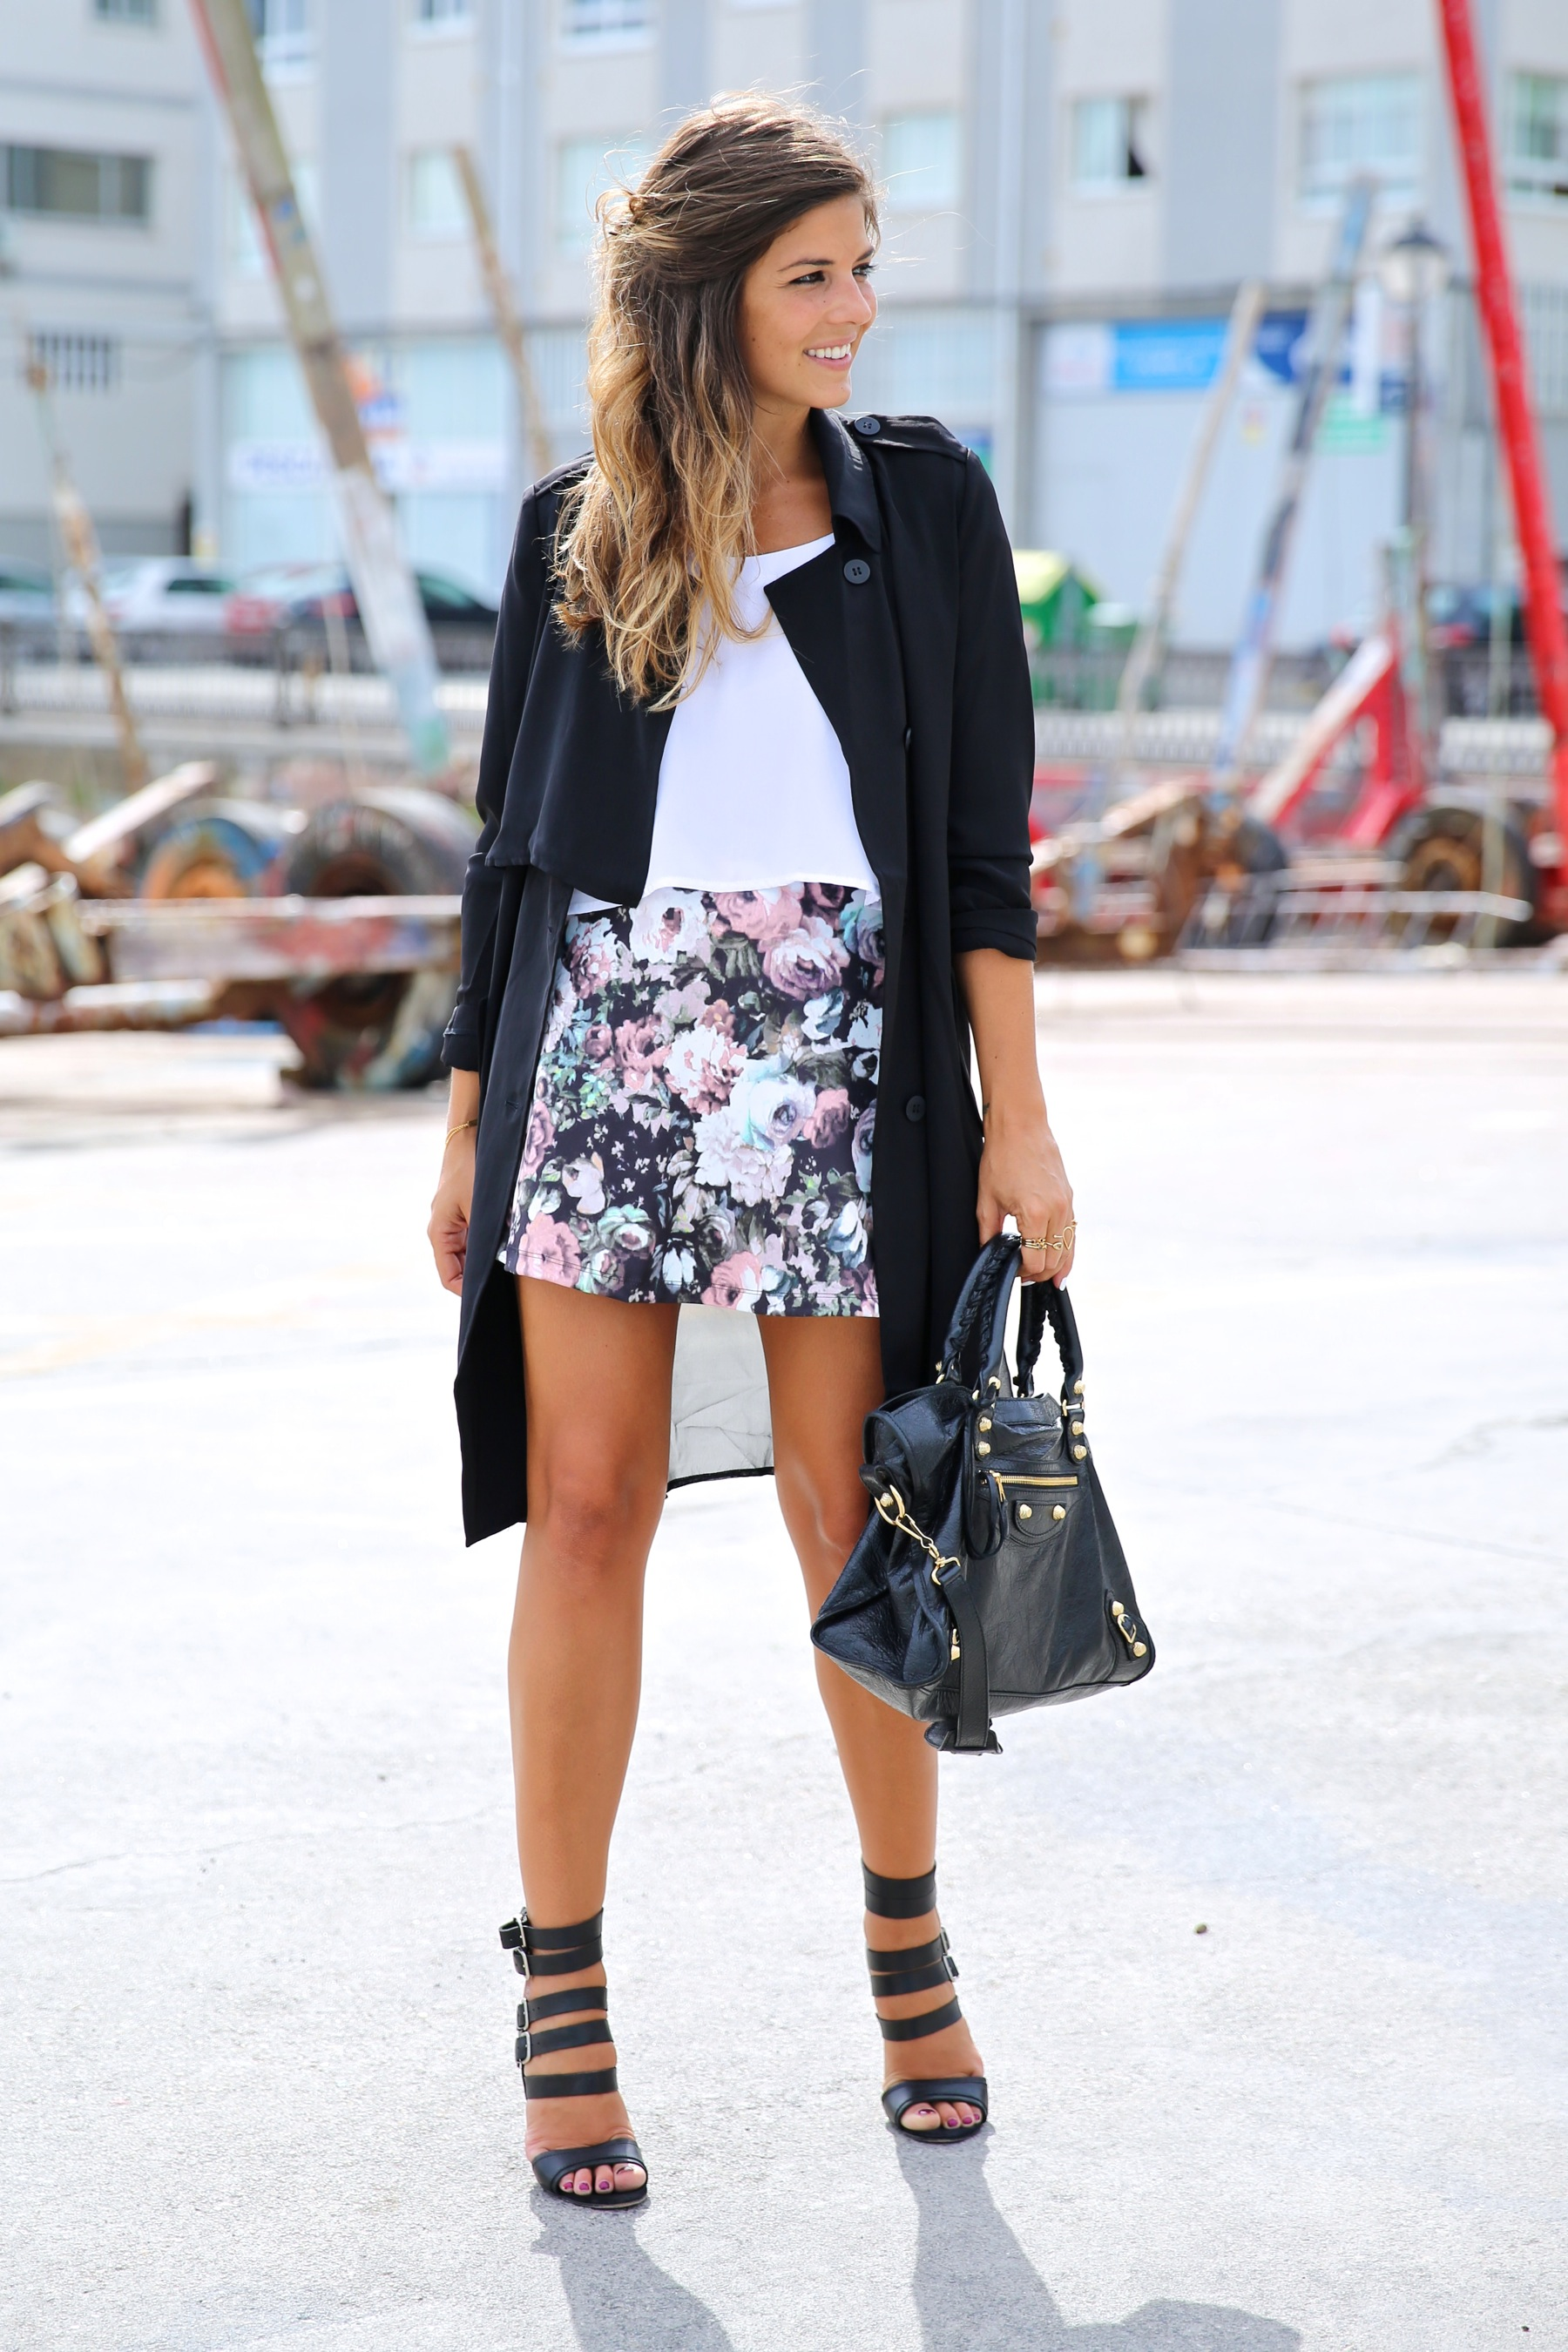 trendy_taste-look-outfit-street_style-ootd-blog-blogger-fashion_spain-moda_españa-flower_print-falda_flores-sandalias_piel-leather_sandals-maje-balenciaga-city_bag-trench-kimono-top_blanco-white_top-11